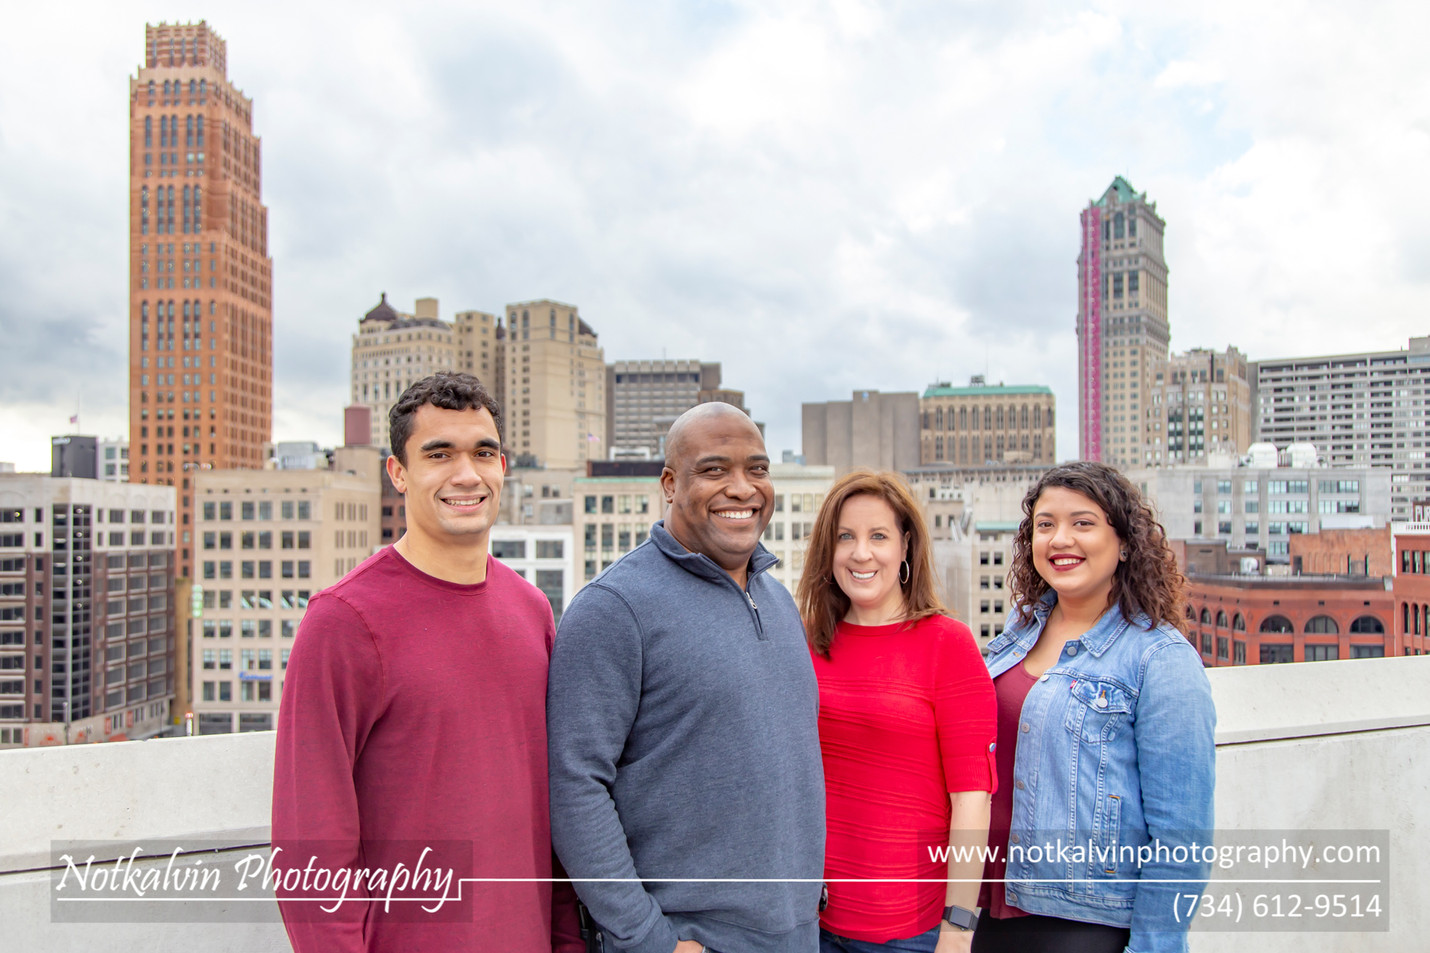 Rodgers Family - _mg_3726.jpg